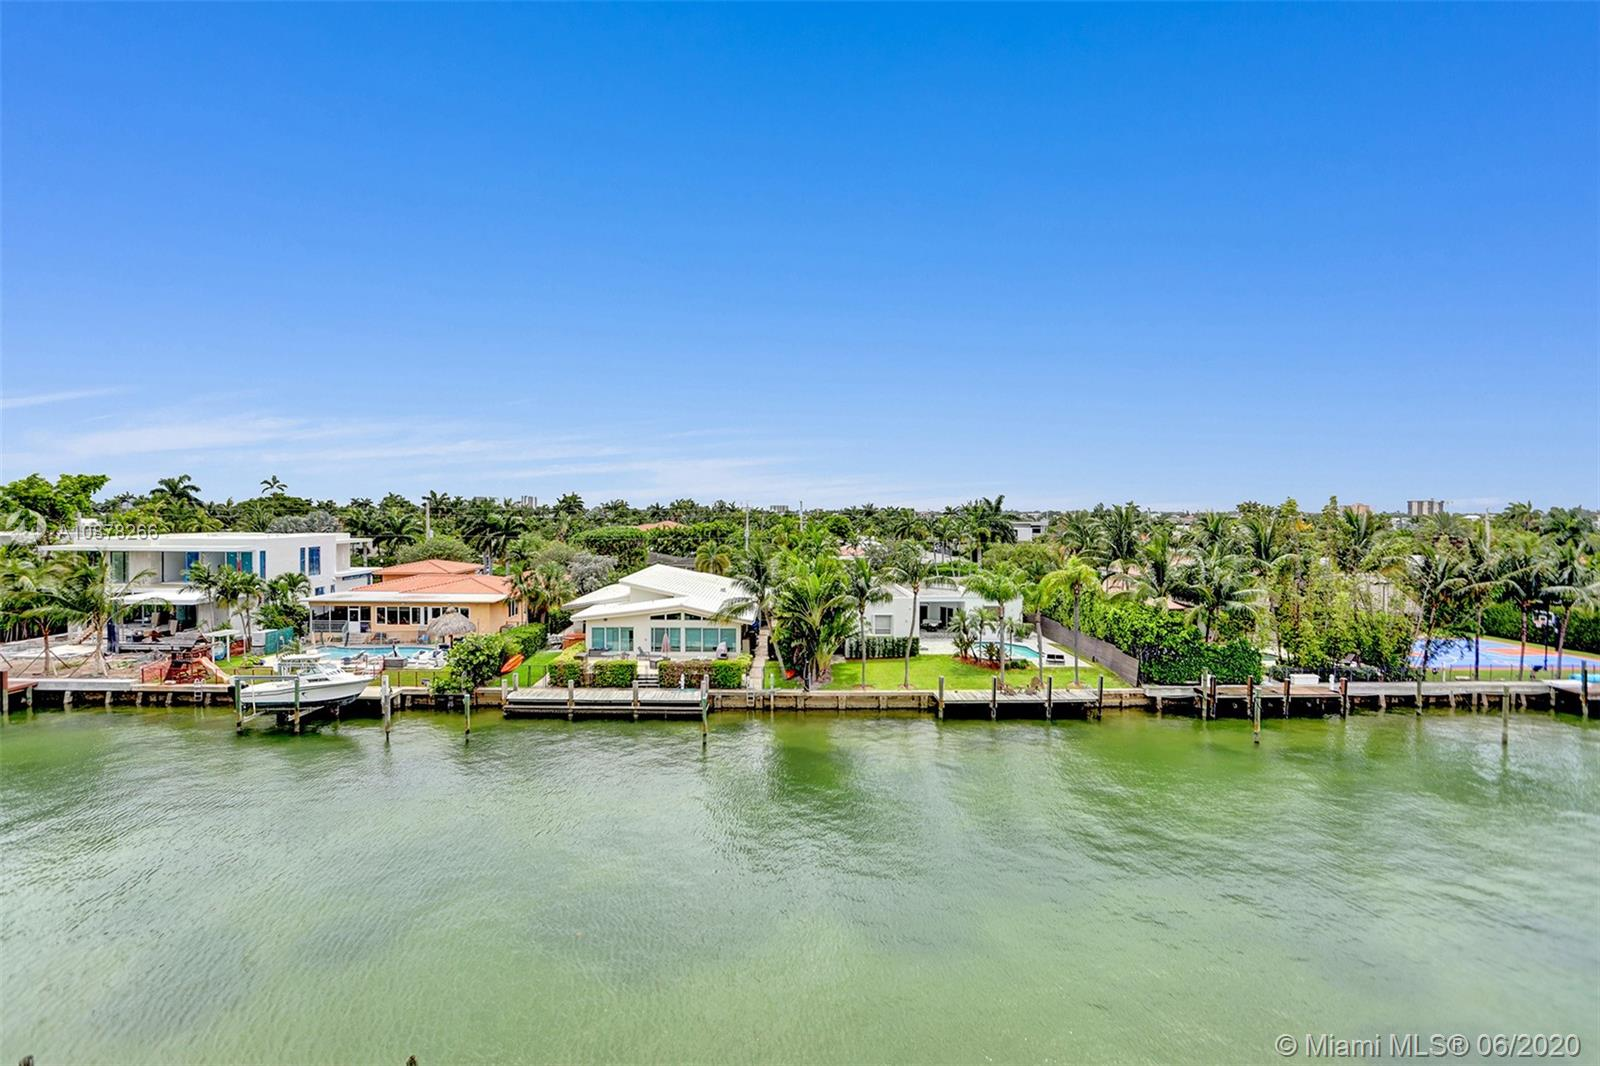 Fabulous opportunity to own a bright and spacious two bedroom, two and one-half bath unit with direct water views in Bay Harbor Islands. Large ample areas all offer views to the water, tile floors and a long balcony. A washer and dryer come with the unit, as do two assigned parking spaces. You'll find many amenities in this doorman building including a pool, boat dockage, an exercise room and more. Steps of fine dining, parks, top rated schools, beaches and the famous Bal Harbour Shops make this a prime location. Enjoy the Miami sunset from the comfort of your balcony!